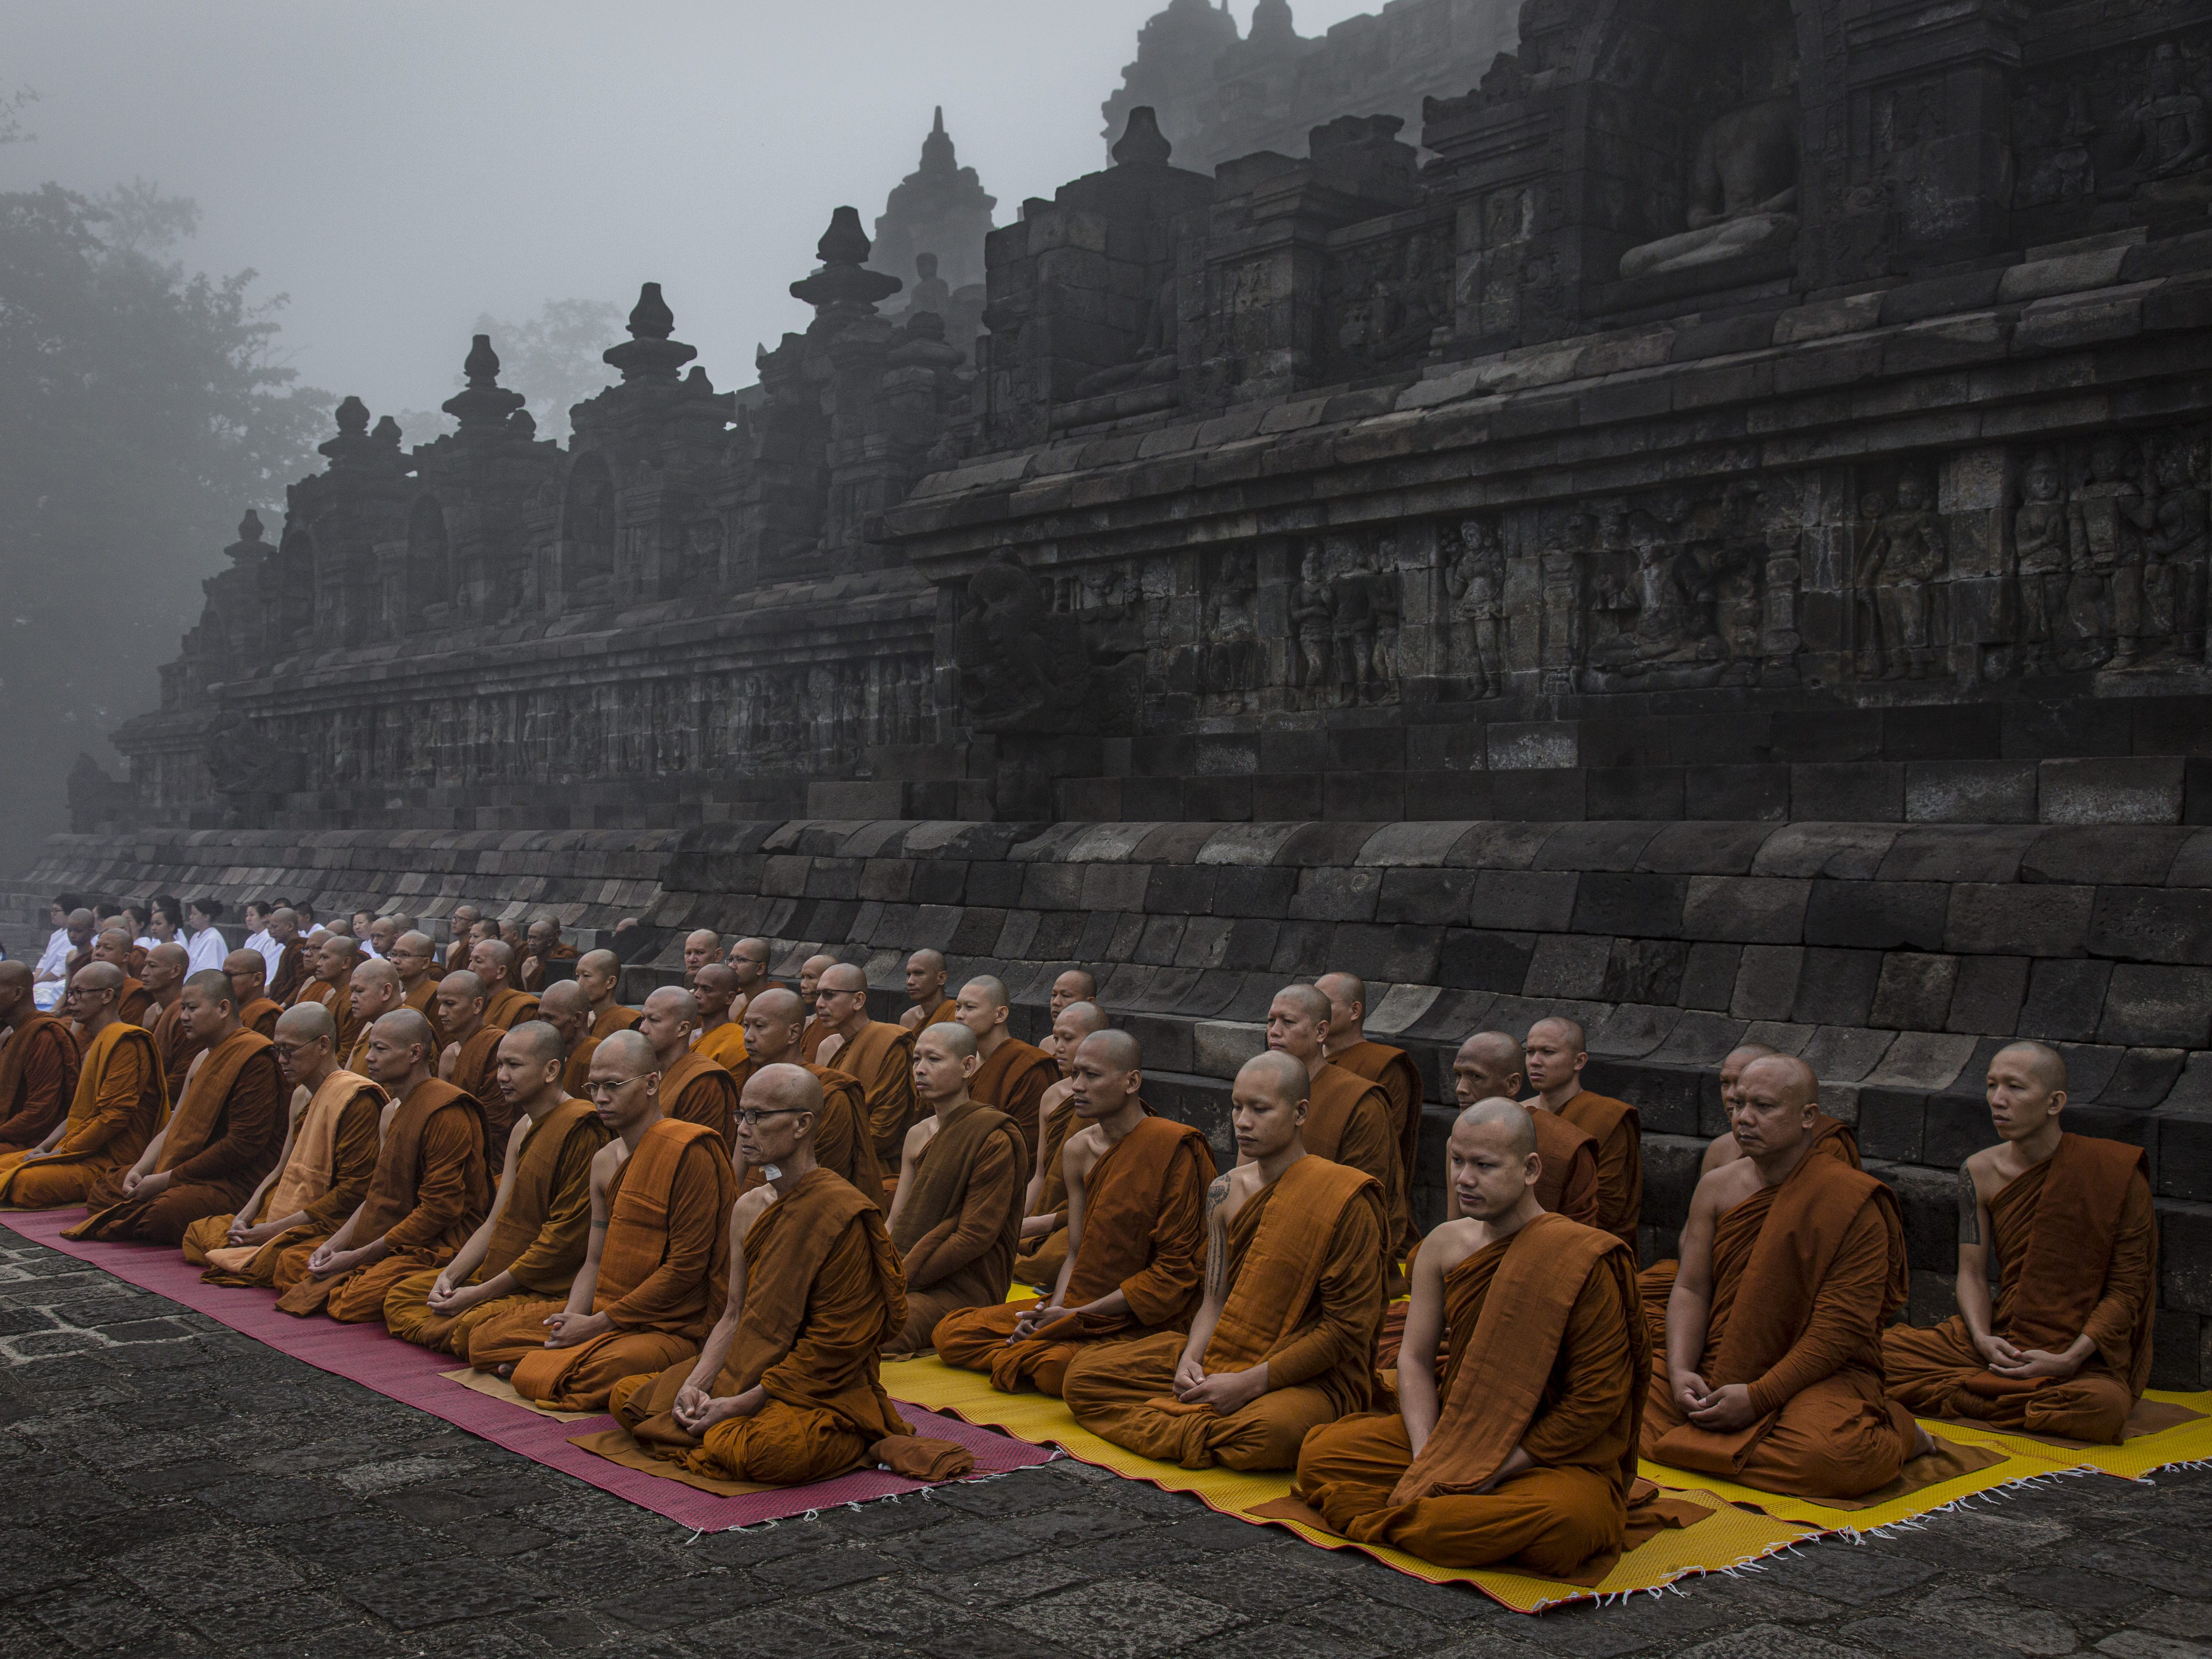 Buddhist monks pray at Borobudur temple during celebrations for Vesak Day on May 18, 2019 in Magelang, Central Java, Indonesia. Buddhists in Indonesia celebrate Vesak at the Borobudur temple annually, which makes it the most visited tourist attraction in Indonesia. It is observed during the full moon in May or June, with the ceremony centered at three Buddhist temples by walking from Mendut to Pawon and ending at Borobudur. The stages of life of Buddhism's founder, Gautama Buddha, which are celebrated at Vesak are his birth, enlightenment to Nirvana, and his passing (Parinirvana).